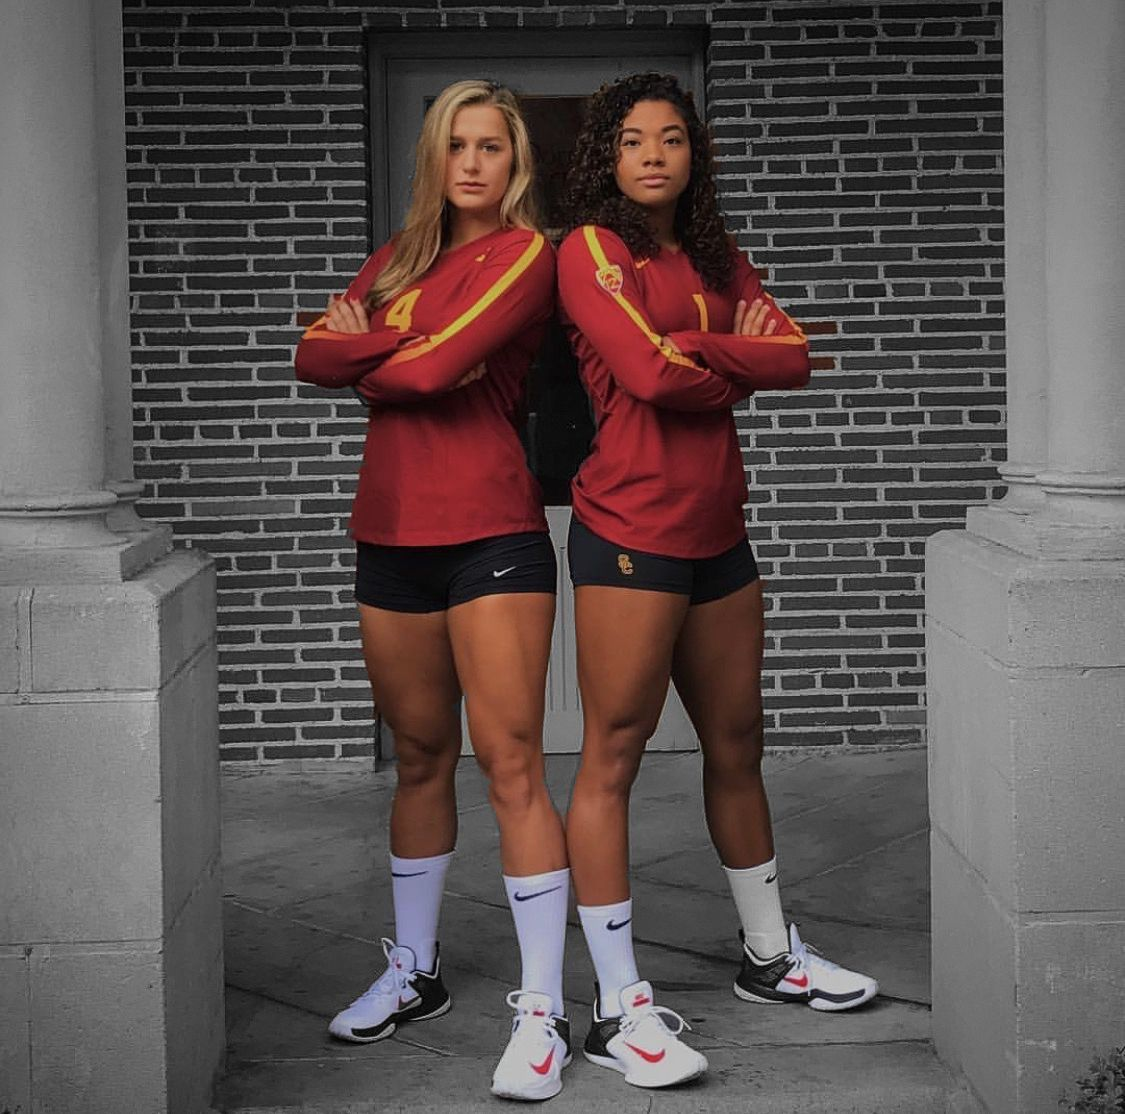 Victoria Garrick And Alyse Ford Fighton In 2020 Volleyball Poses Volleyball Pictures Volleyball Workouts